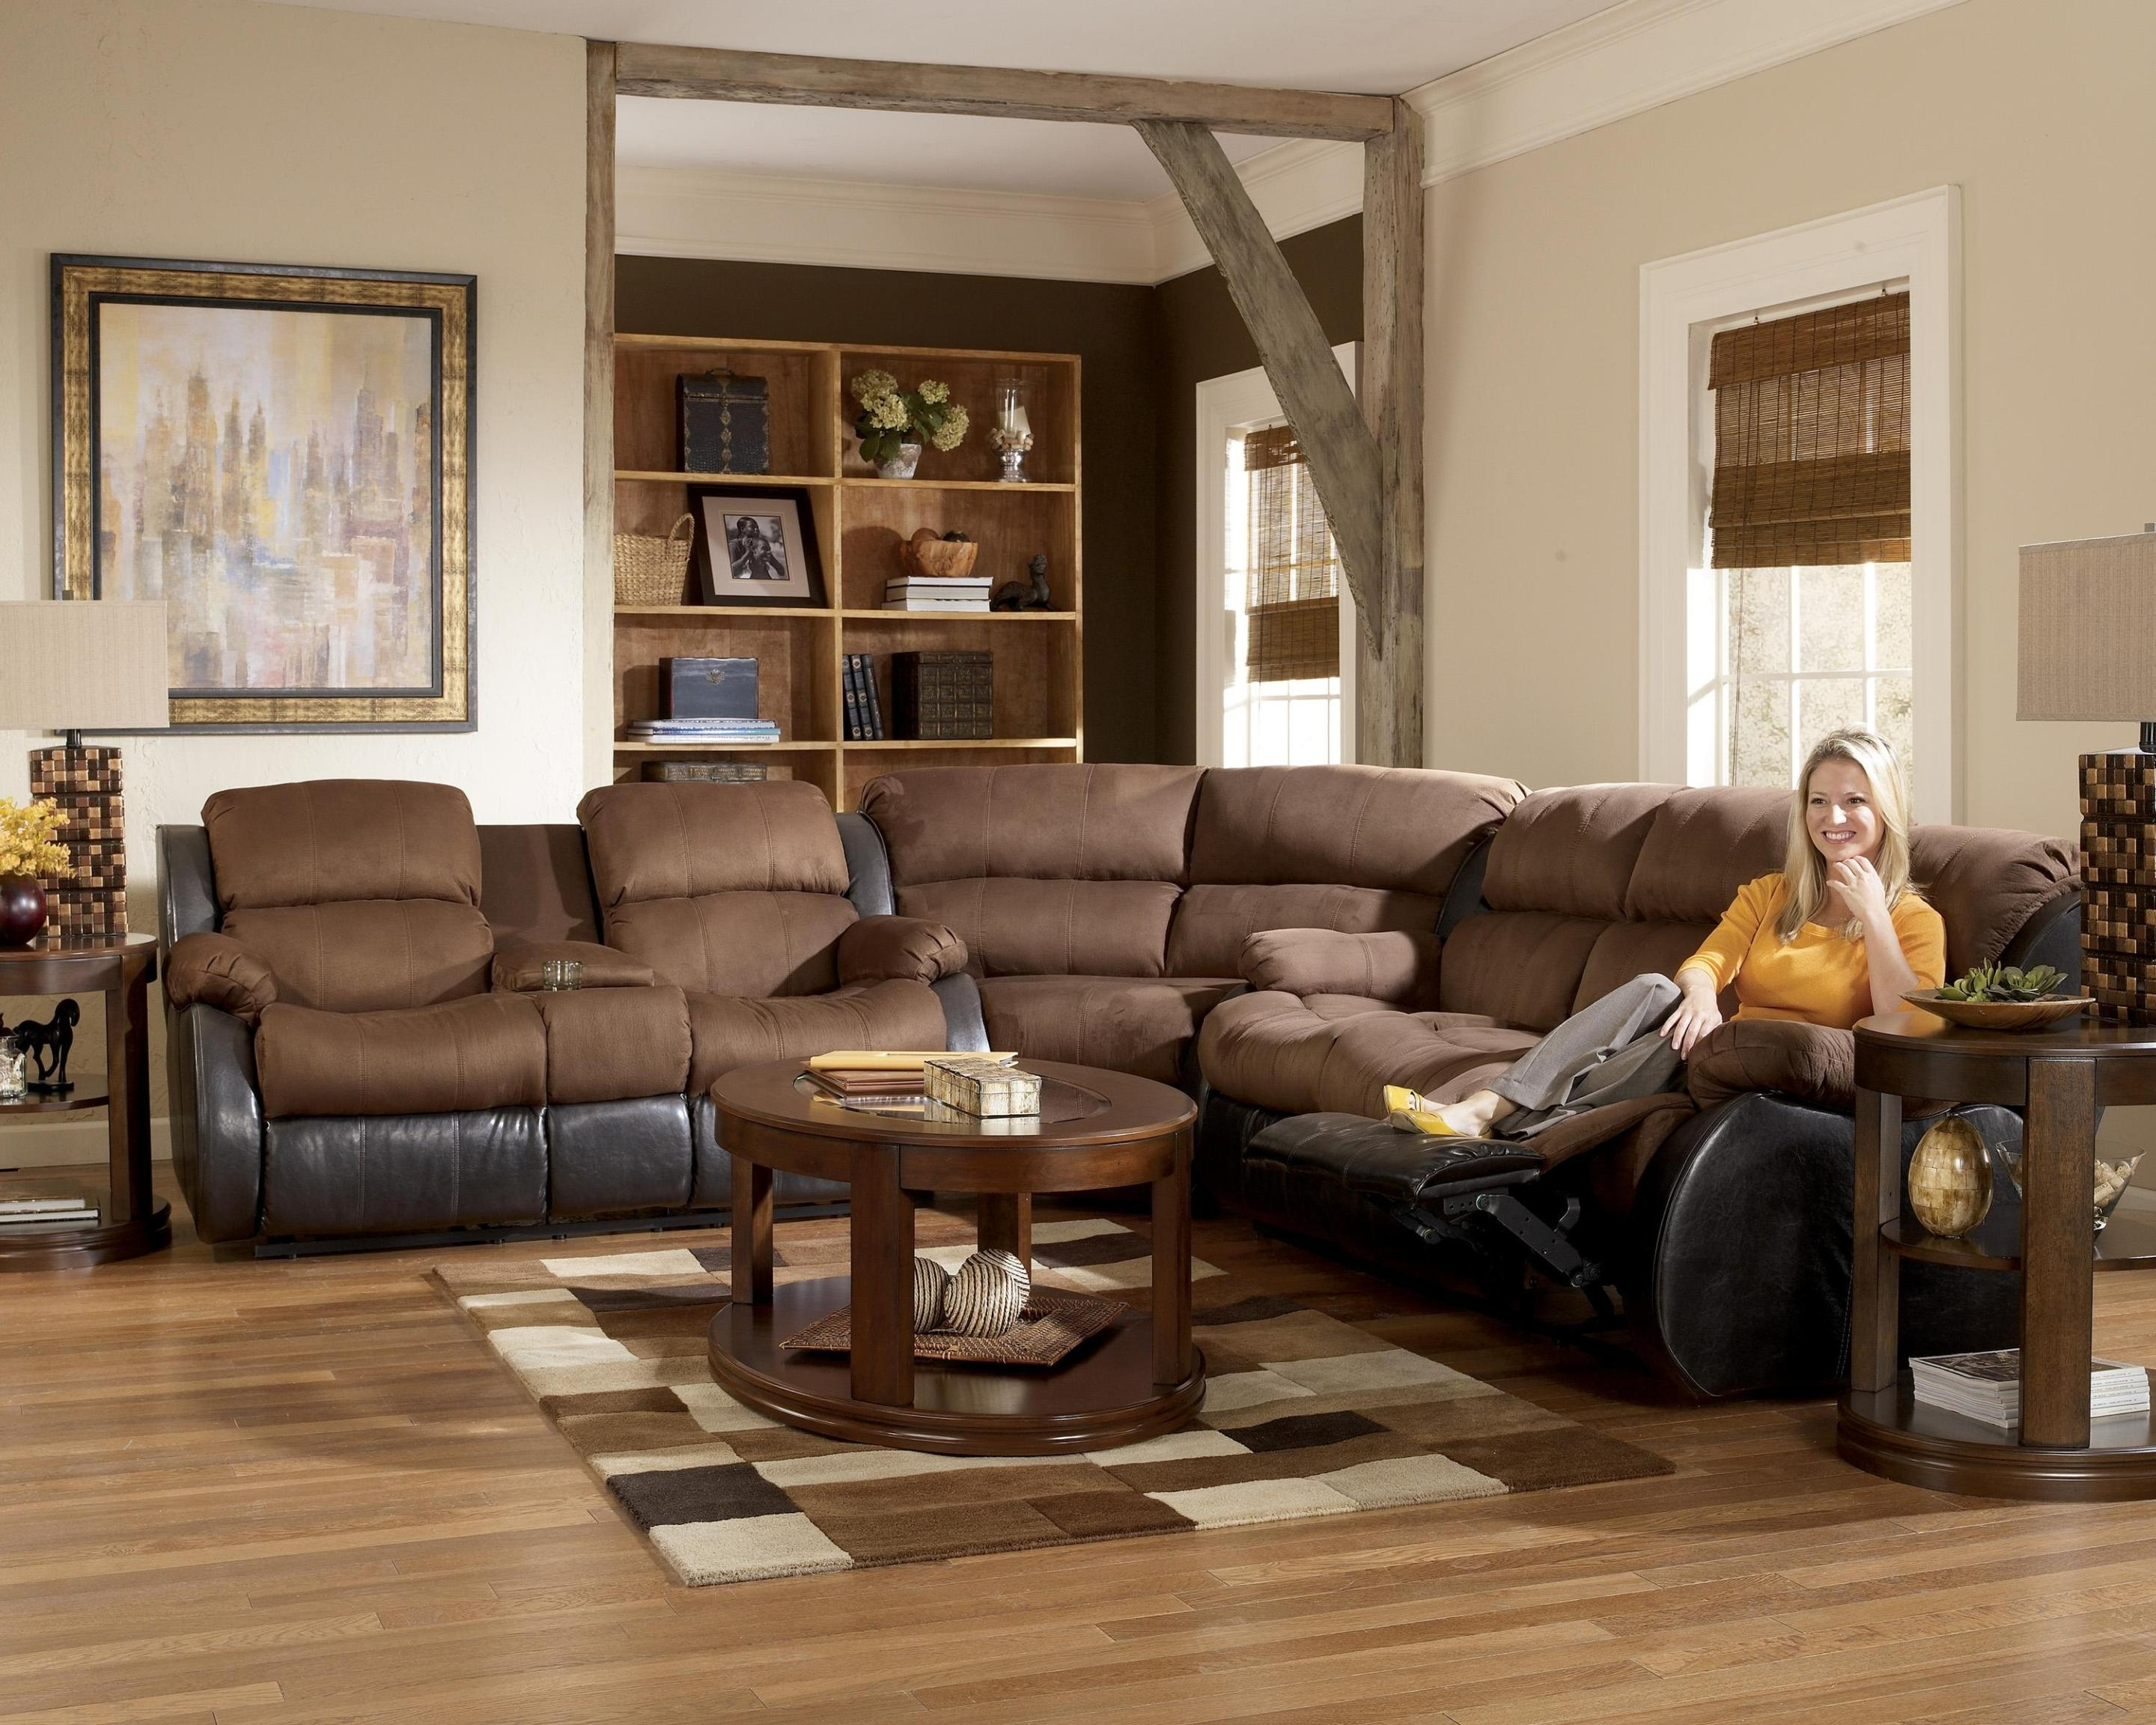 Small Sofas And Chairs Intended For Well Known Small Leather Sectional Sofa Luxury Furniture Sofa Perfect Small (View 11 of 15)